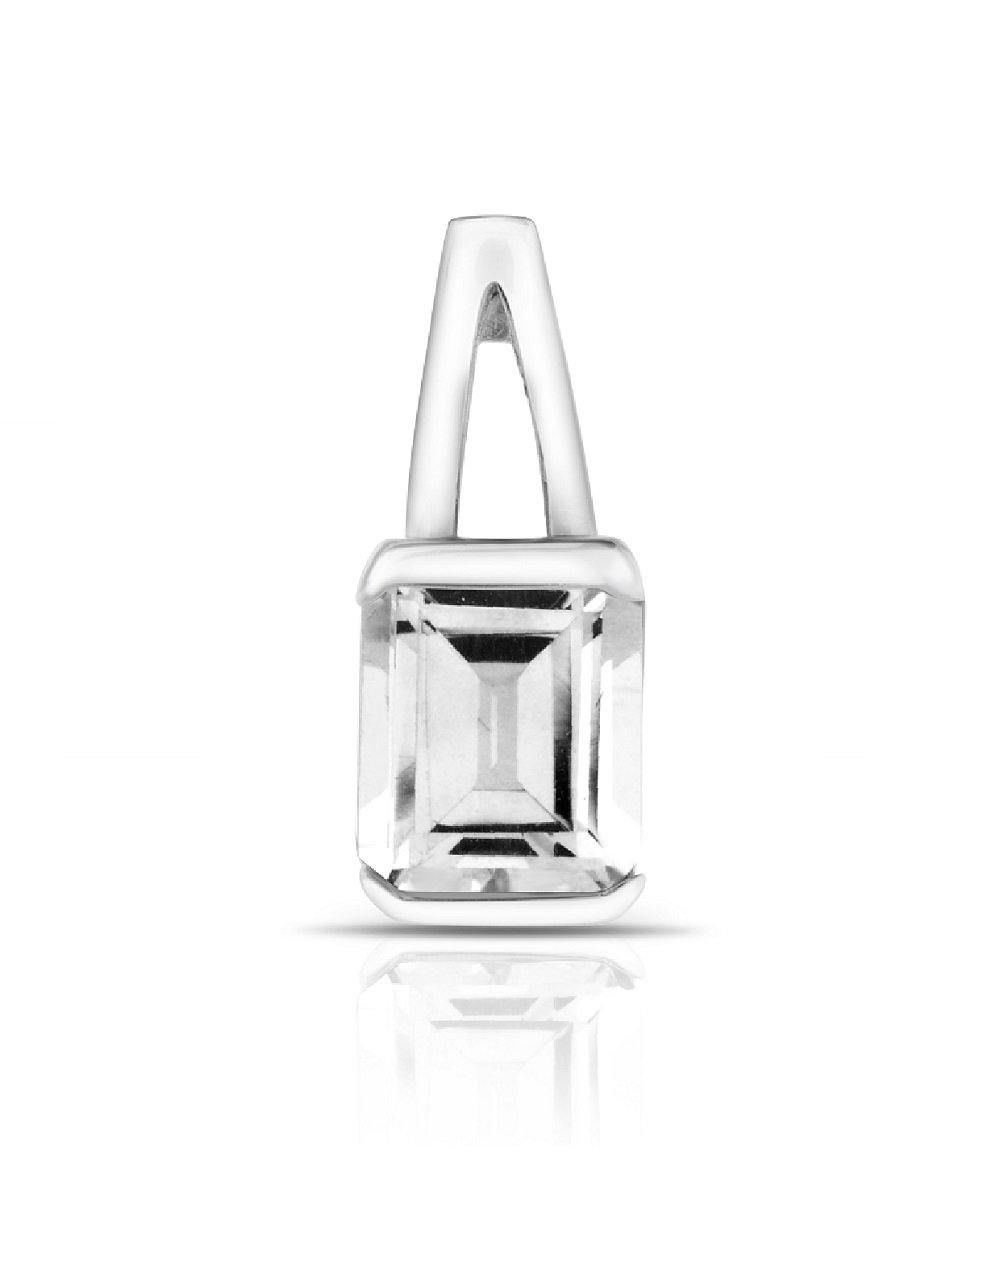 Solitaire White Topaz Pendant with Chain in Sterling Silver - For The Love of Jewelry